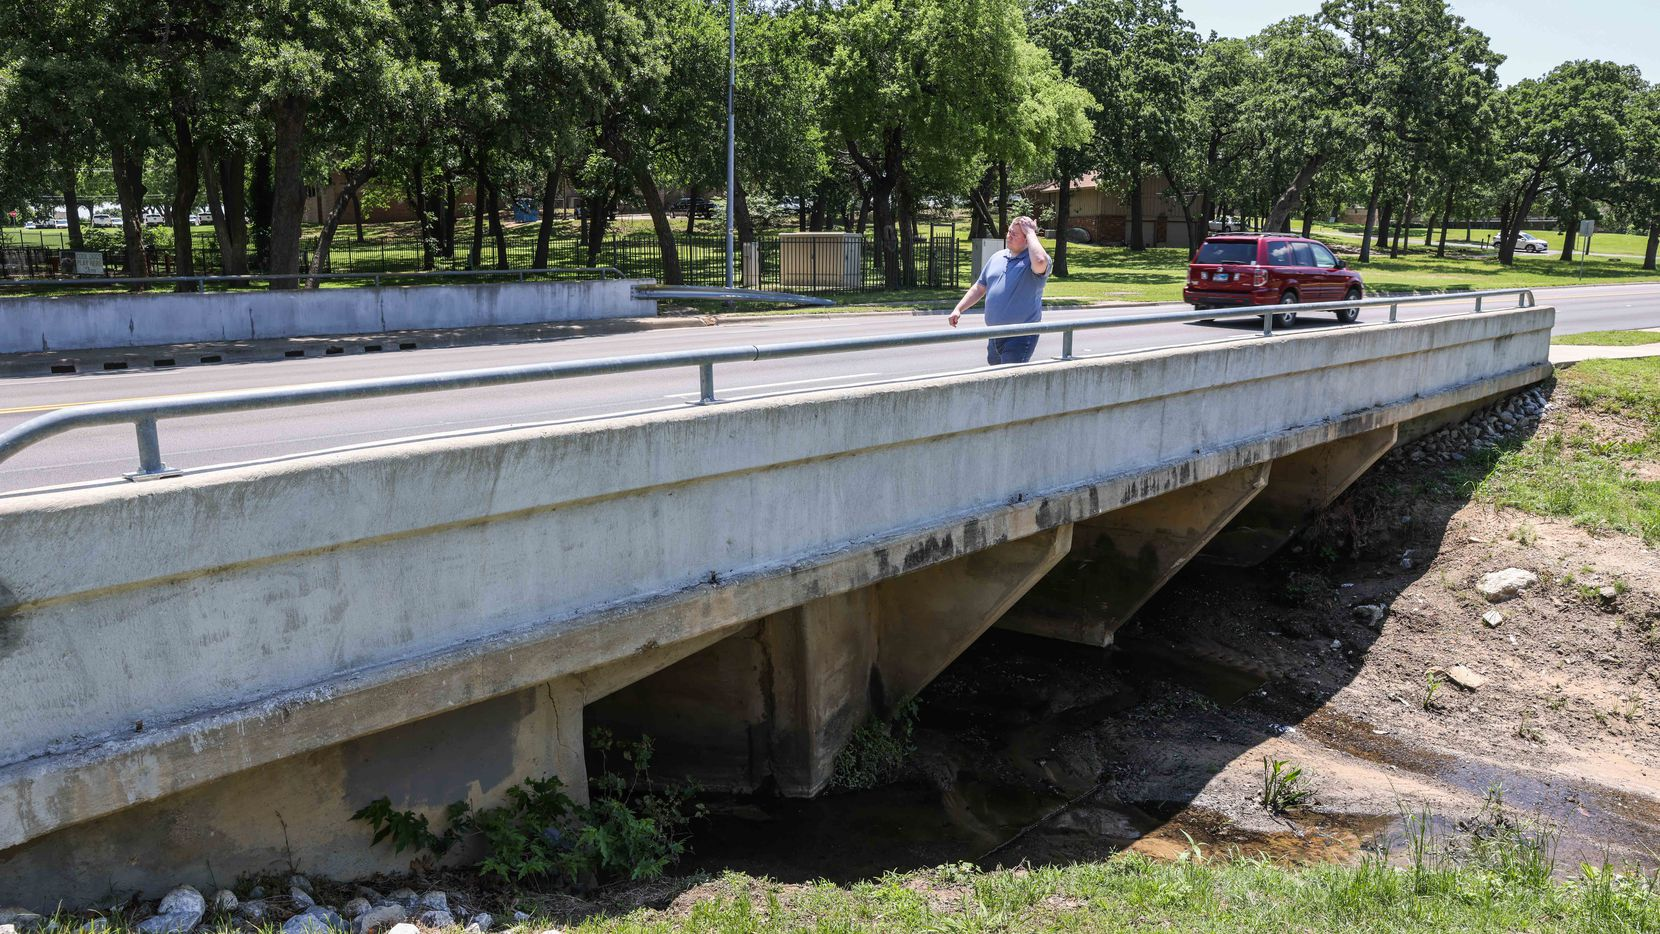 A drainage culvert under a small bridge around the 2100 block near The Arbors Apartments on Forest Ridge in Bedford on Friday, May 14, 2021. Nicholas Lloyd Nelson, a 38-year-old Tarrant County man suspect, admitted to setting off a homemade bomb in April at this location.